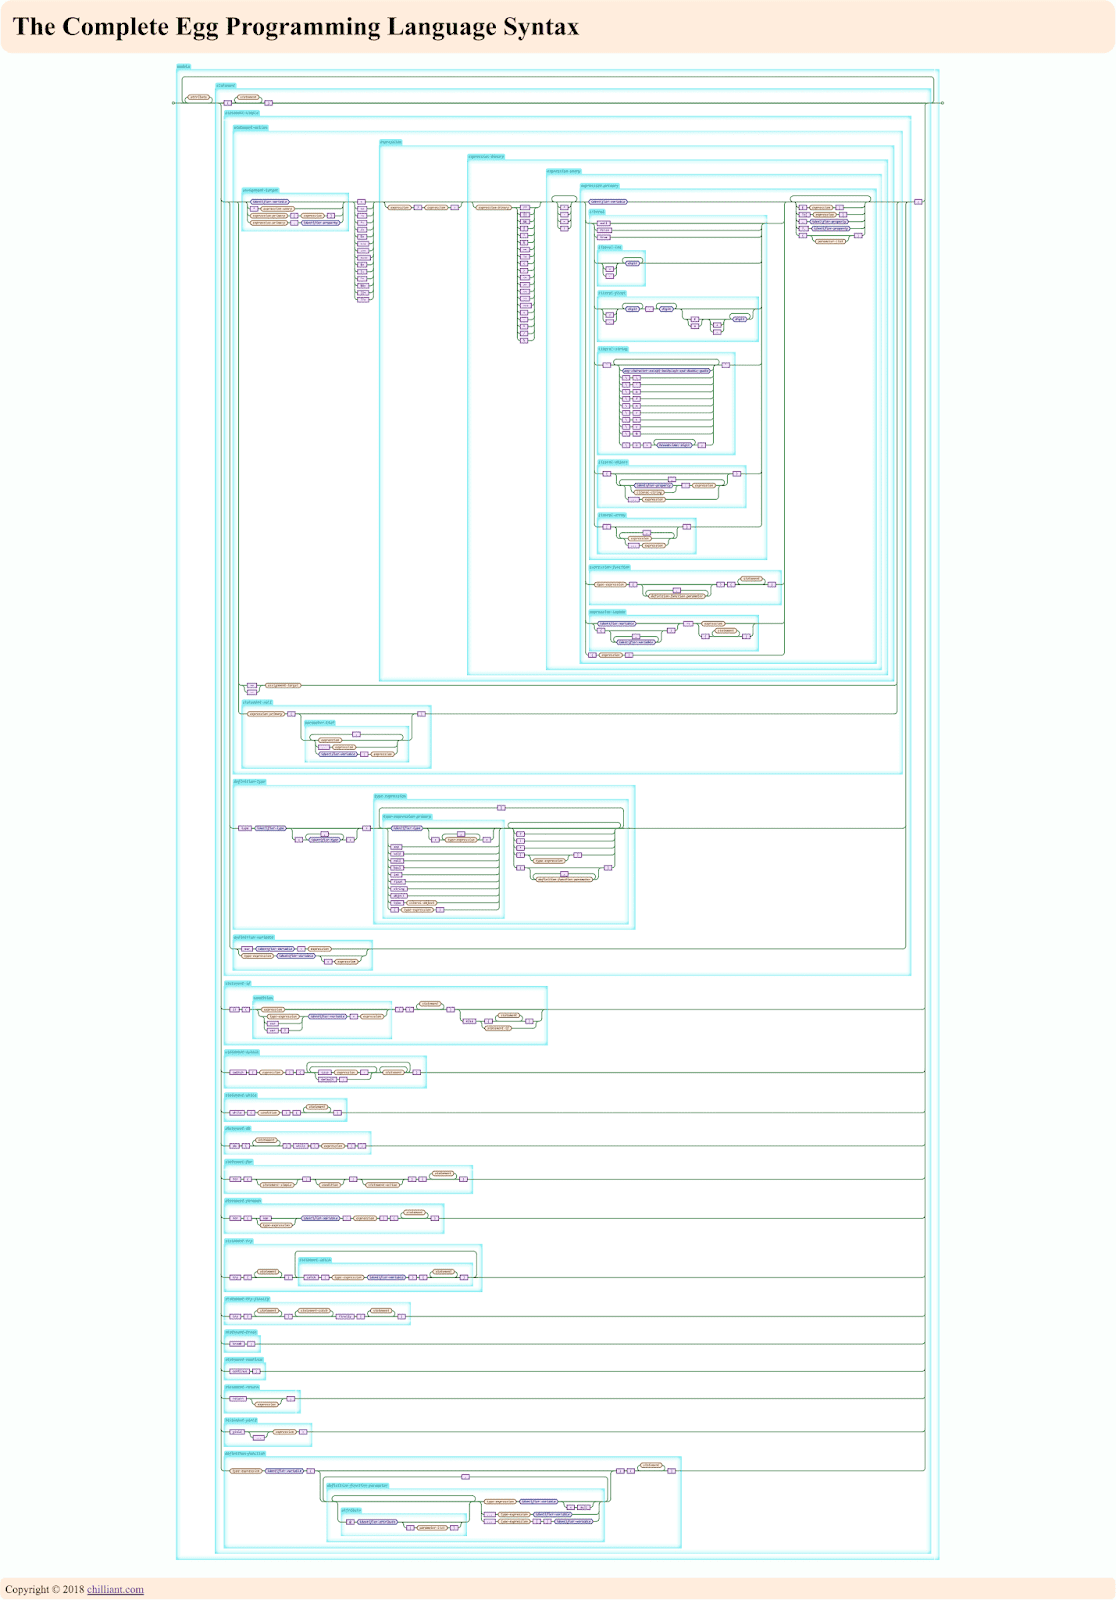 small resolution of as mentioned last time i ve been working on a poster for the complete egg programming language syntax as a railroad diagram i finally managed to squeeze